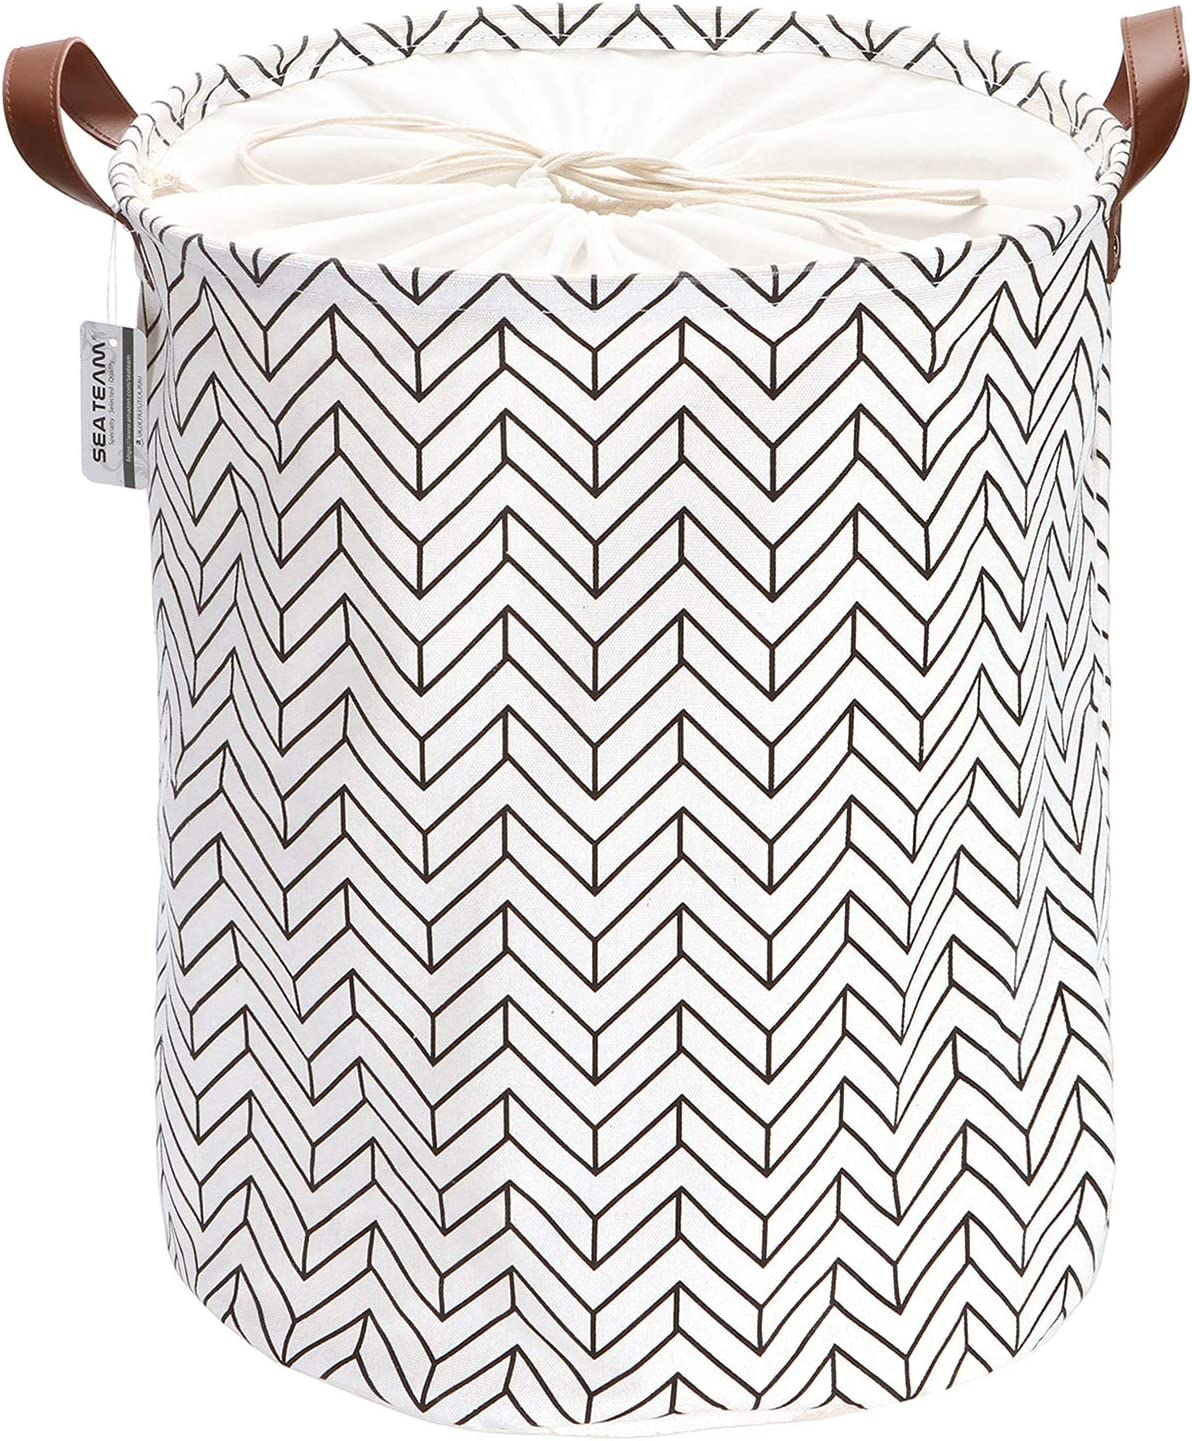 Sea Team Arrowhead Pattern Laundry Hamper Canvas Fabric Laundry Basket Collapsible Storage Bin with PU Leather Handles and Drawstring Closure, 19.7 by 15.7 inches, Waterproof Inner, Black